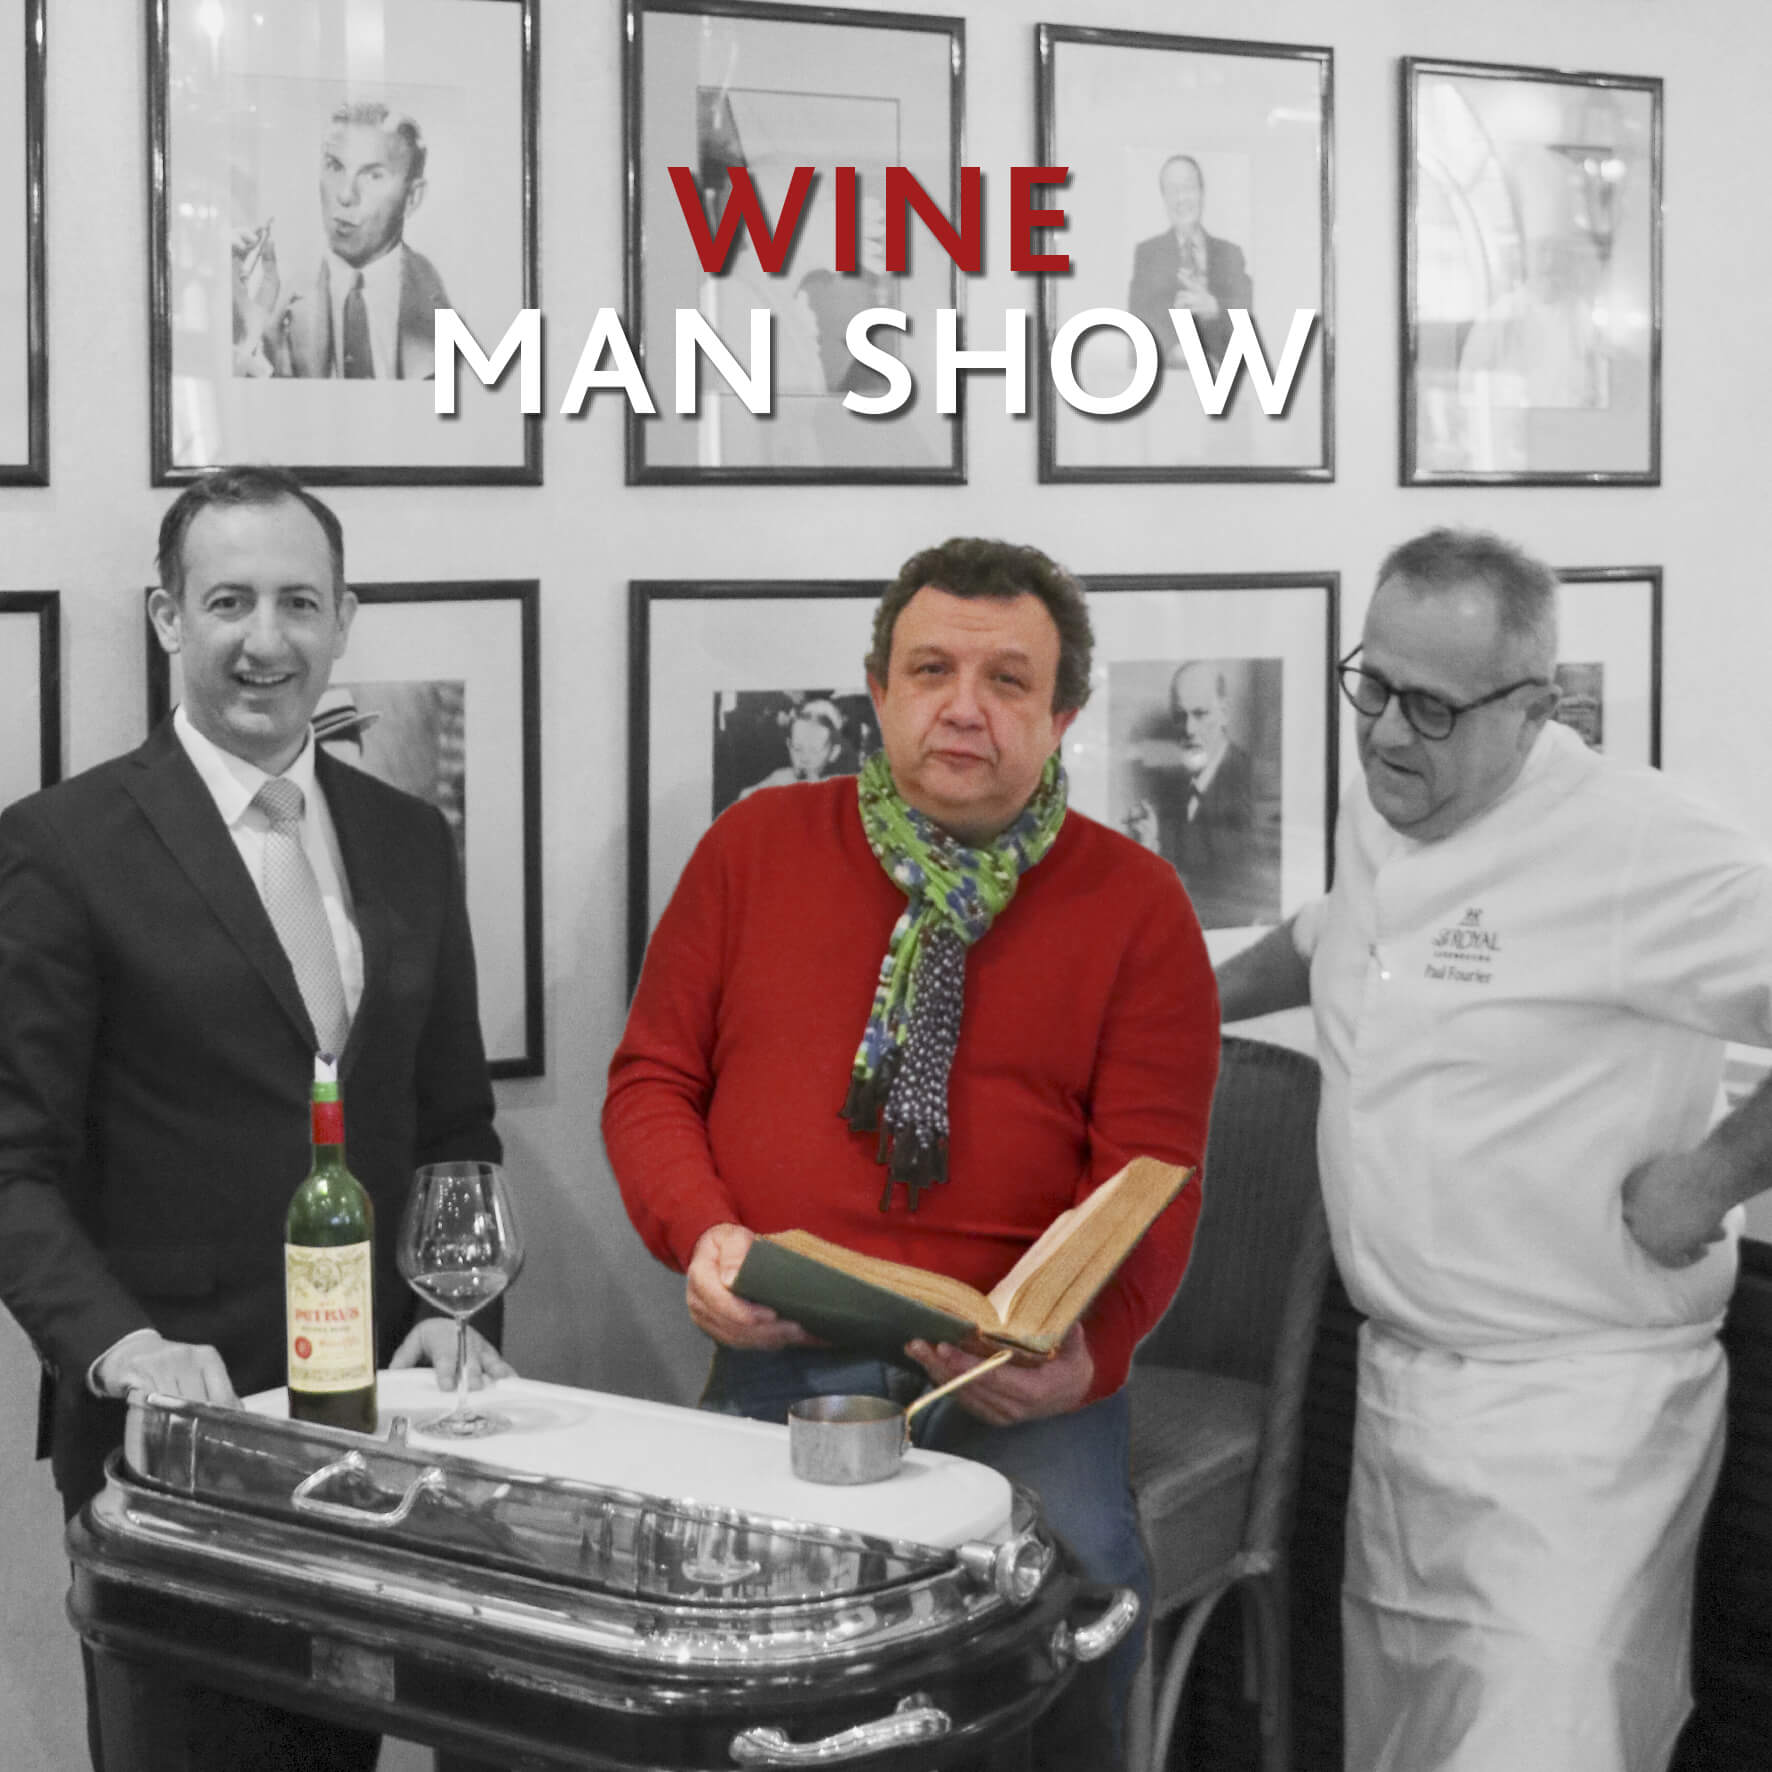 Wine Man show with Eric Boschman